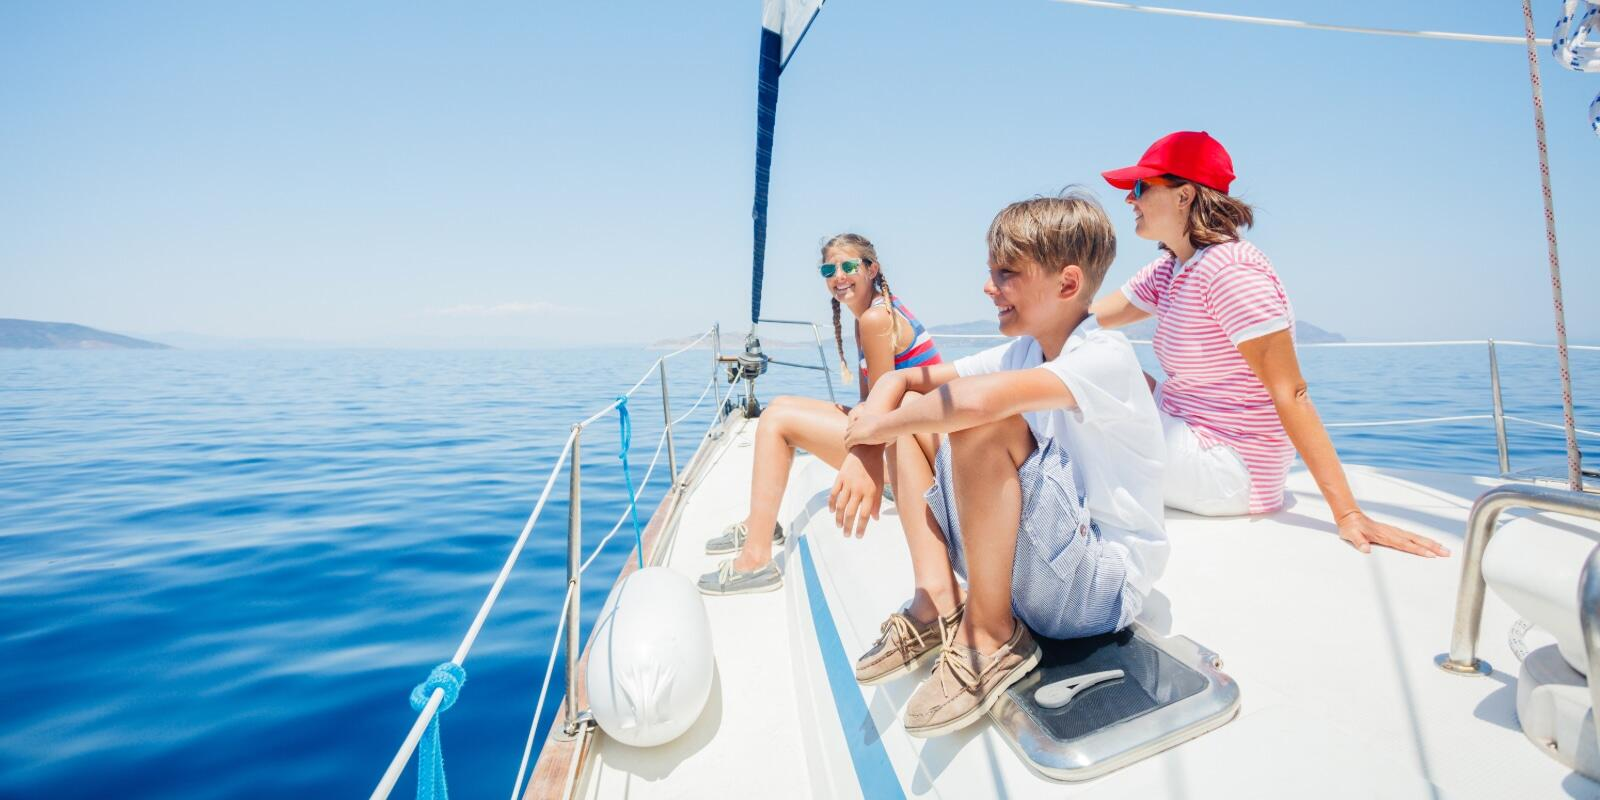 Cruise from the Aeolian Islands to Nettuno passing the Calabrian coast, Cilento and Ischia